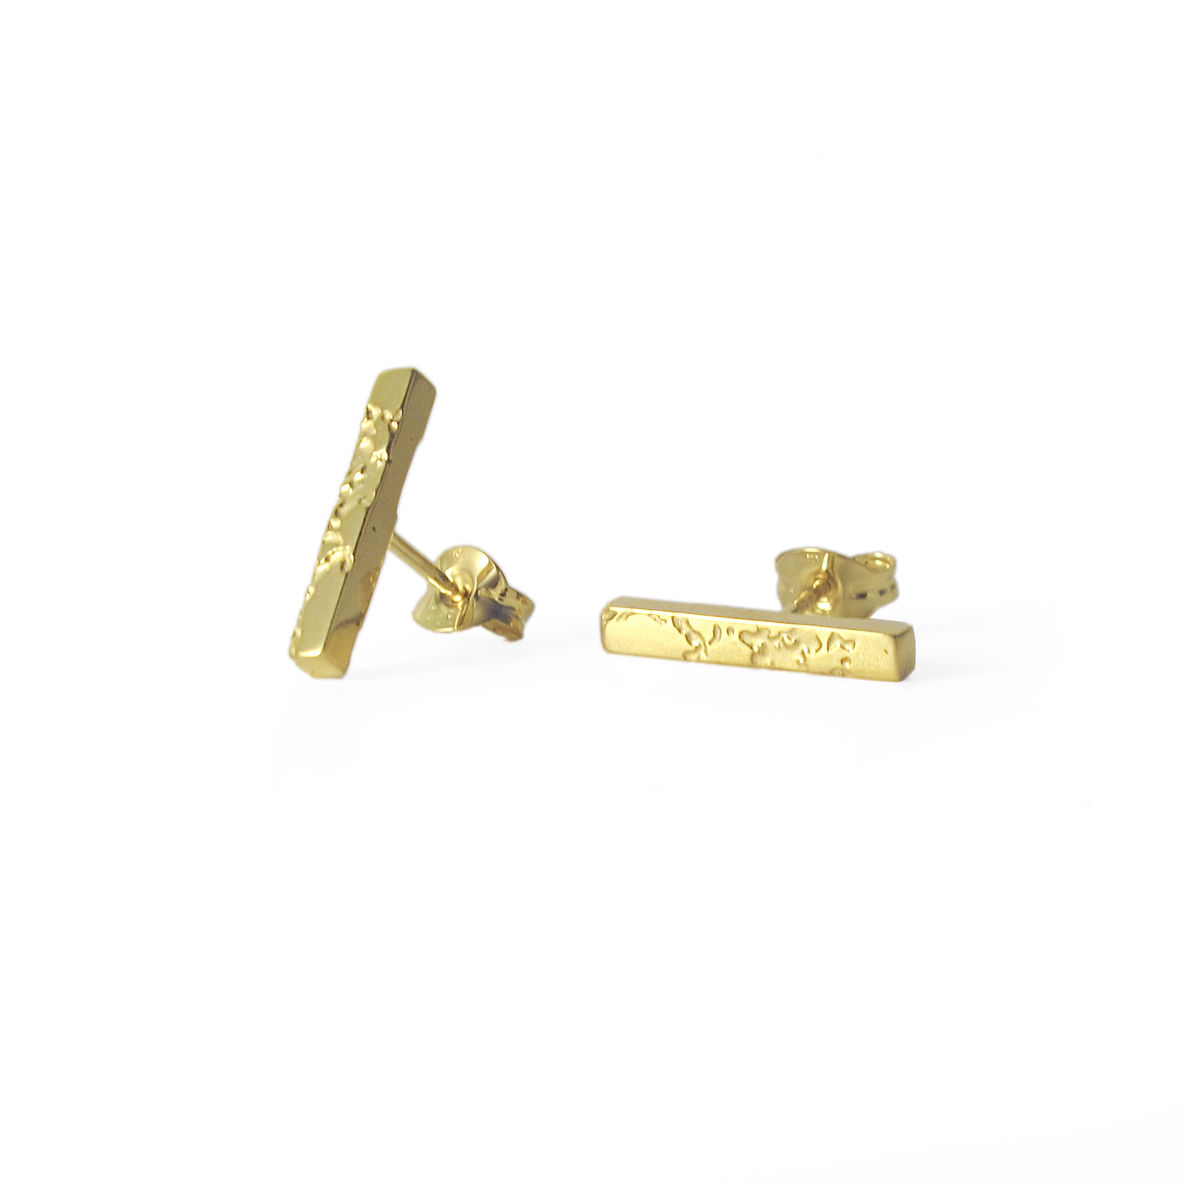 SKIN textured bar stud earrings - gold plated silver - product image